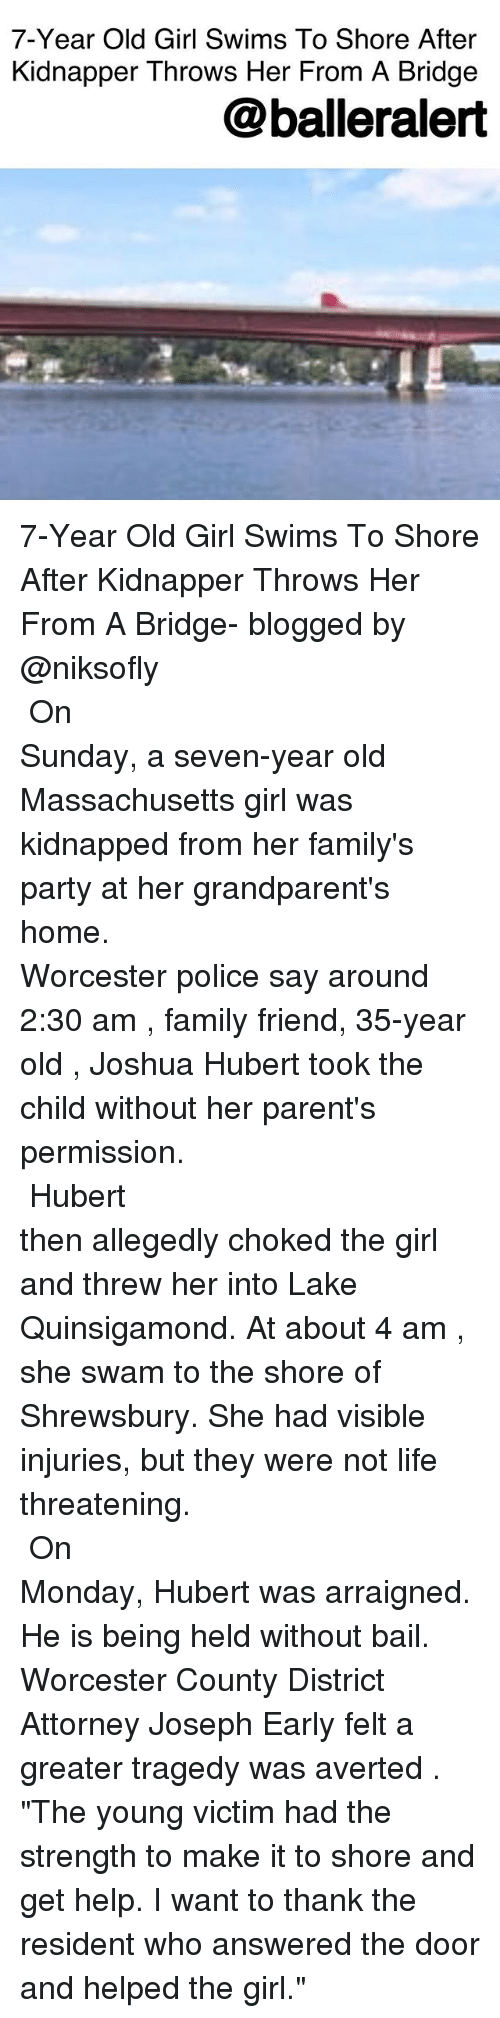 """Family, Life, and Memes: 7-Year Old Girl Swims To Shore After  Kidnapper Throws Her From A Bridge  @balleralert 7-Year Old Girl Swims To Shore After Kidnapper Throws Her From A Bridge- blogged by @niksofly ⠀⠀⠀⠀⠀⠀⠀⠀⠀⠀⠀⠀⠀⠀⠀⠀⠀⠀⠀⠀⠀⠀⠀⠀⠀⠀⠀⠀⠀⠀⠀⠀⠀⠀⠀⠀ On Sunday, a seven-year old Massachusetts girl was kidnapped from her family's party at her grandparent's home. ⠀⠀⠀⠀⠀⠀⠀⠀⠀⠀⠀⠀⠀⠀⠀⠀⠀⠀⠀⠀⠀⠀⠀⠀⠀⠀⠀⠀⠀⠀⠀⠀⠀⠀⠀⠀ Worcester police say around 2:30 am , family friend, 35-year old , Joshua Hubert took the child without her parent's permission. ⠀⠀⠀⠀⠀⠀⠀⠀⠀⠀⠀⠀⠀⠀⠀⠀⠀⠀⠀⠀⠀⠀⠀⠀⠀⠀⠀⠀⠀⠀⠀⠀⠀⠀⠀⠀ Hubert then allegedly choked the girl and threw her into Lake Quinsigamond. At about 4 am , she swam to the shore of Shrewsbury. She had visible injuries, but they were not life threatening. ⠀⠀⠀⠀⠀⠀⠀⠀⠀⠀⠀⠀⠀⠀⠀⠀⠀⠀⠀⠀⠀⠀⠀⠀⠀⠀⠀⠀⠀⠀⠀⠀⠀⠀⠀⠀ On Monday, Hubert was arraigned. He is being held without bail. Worcester County District Attorney Joseph Early felt a greater tragedy was averted . """"The young victim had the strength to make it to shore and get help. I want to thank the resident who answered the door and helped the girl."""""""